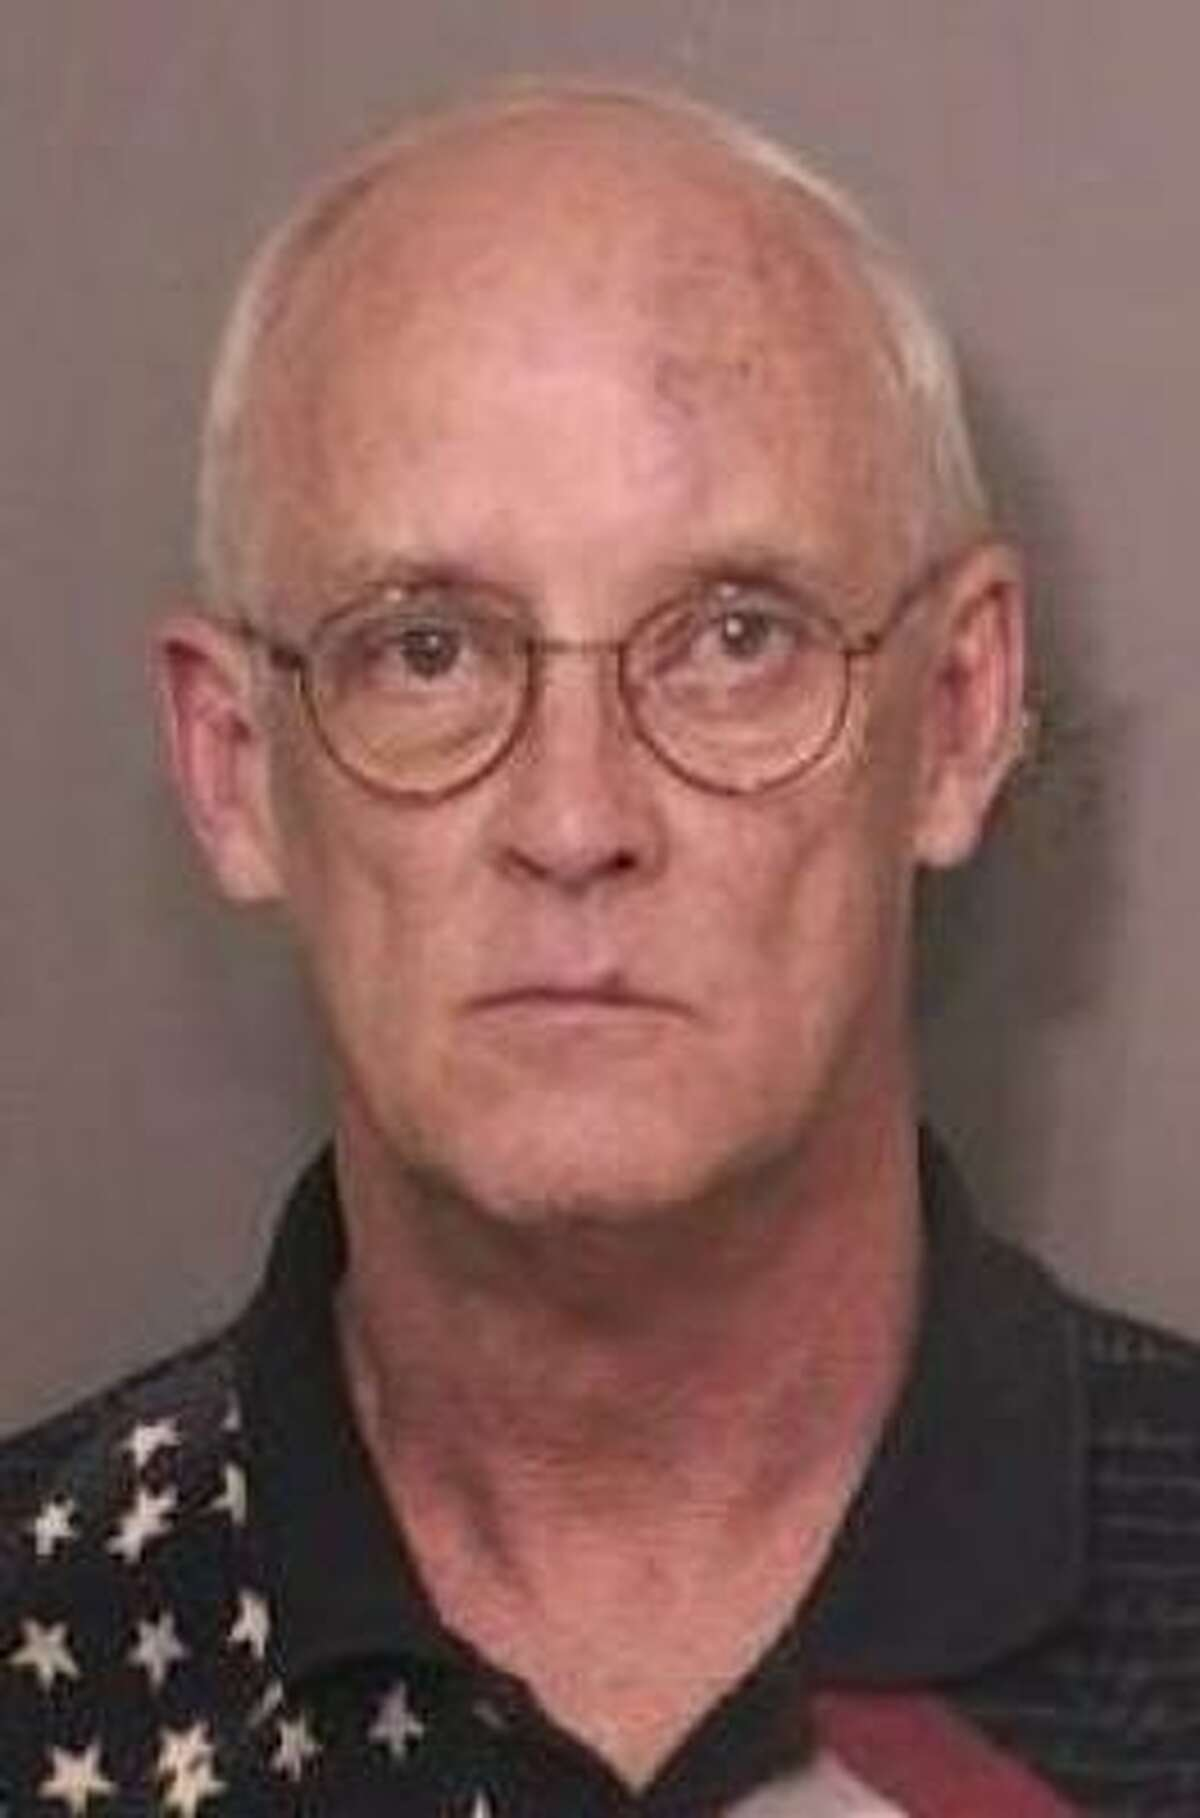 Robert Carroll Gillham, a former Gallery employee, is charged with arson, a first-degree felony.